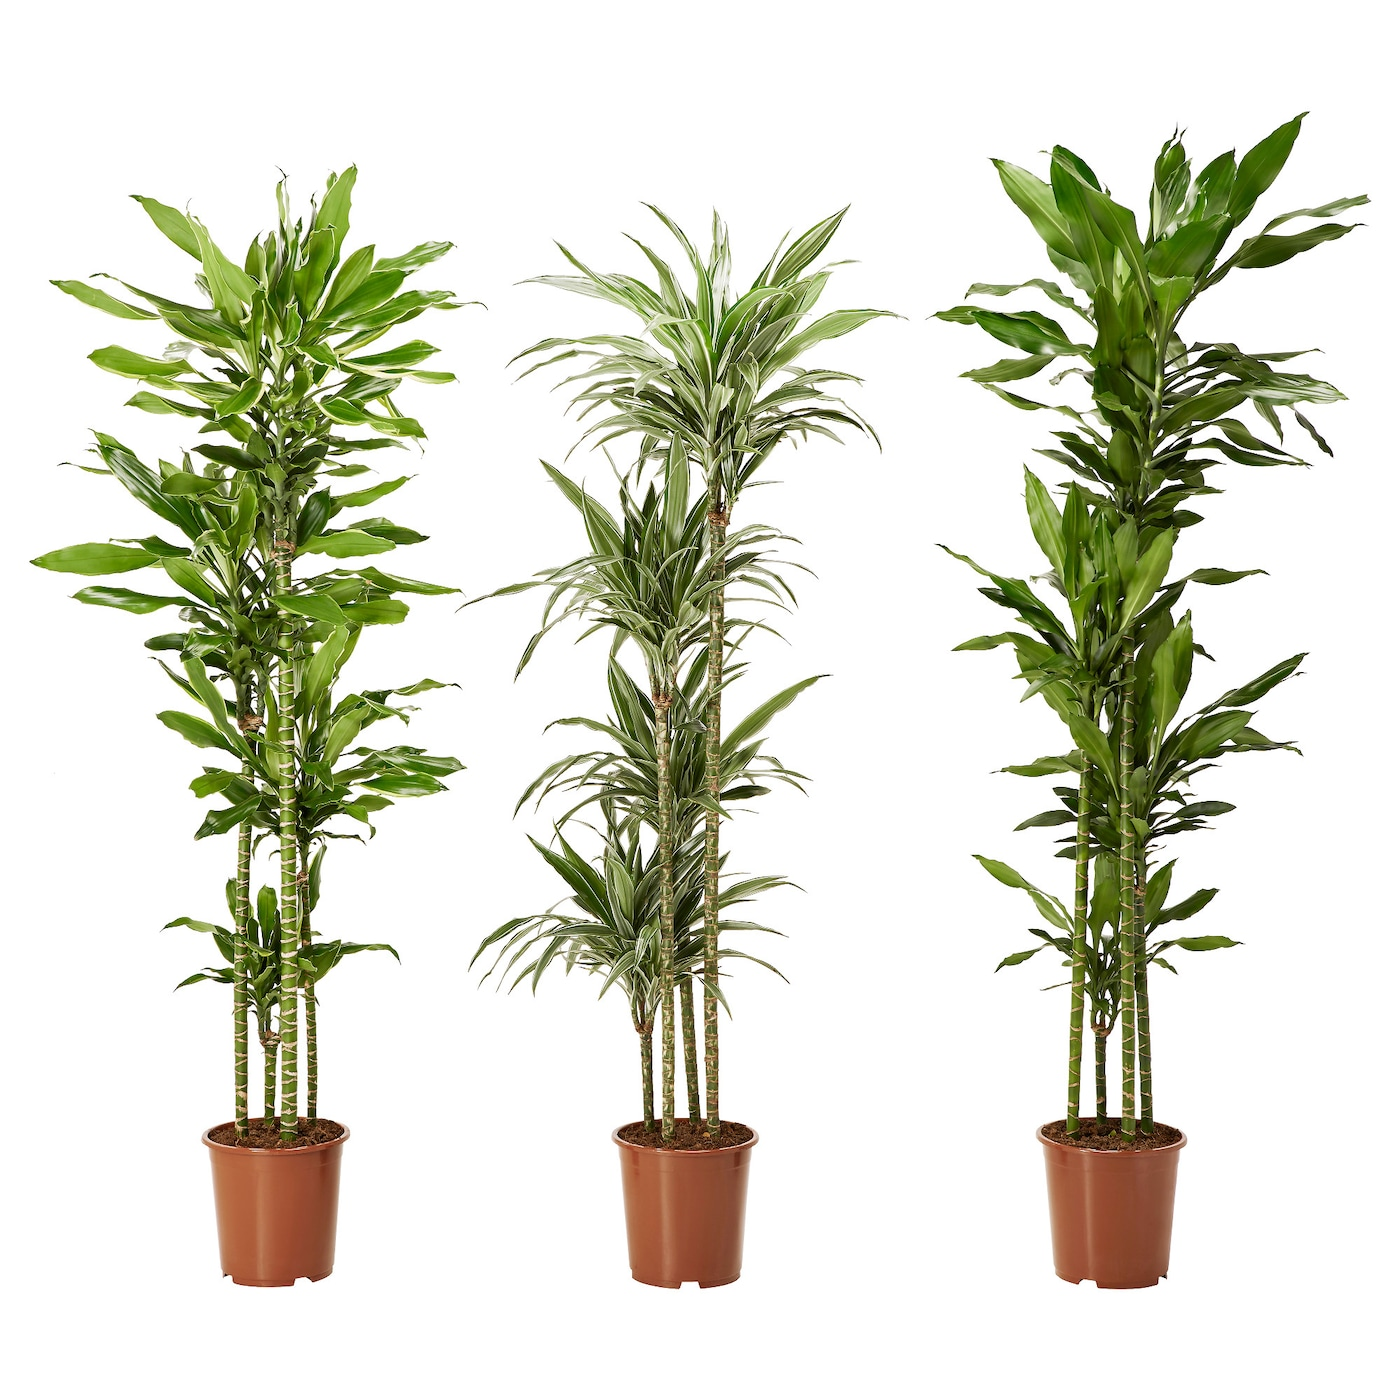 dracaena deremensis plante en pot diverses esp ces 27 cm ikea. Black Bedroom Furniture Sets. Home Design Ideas